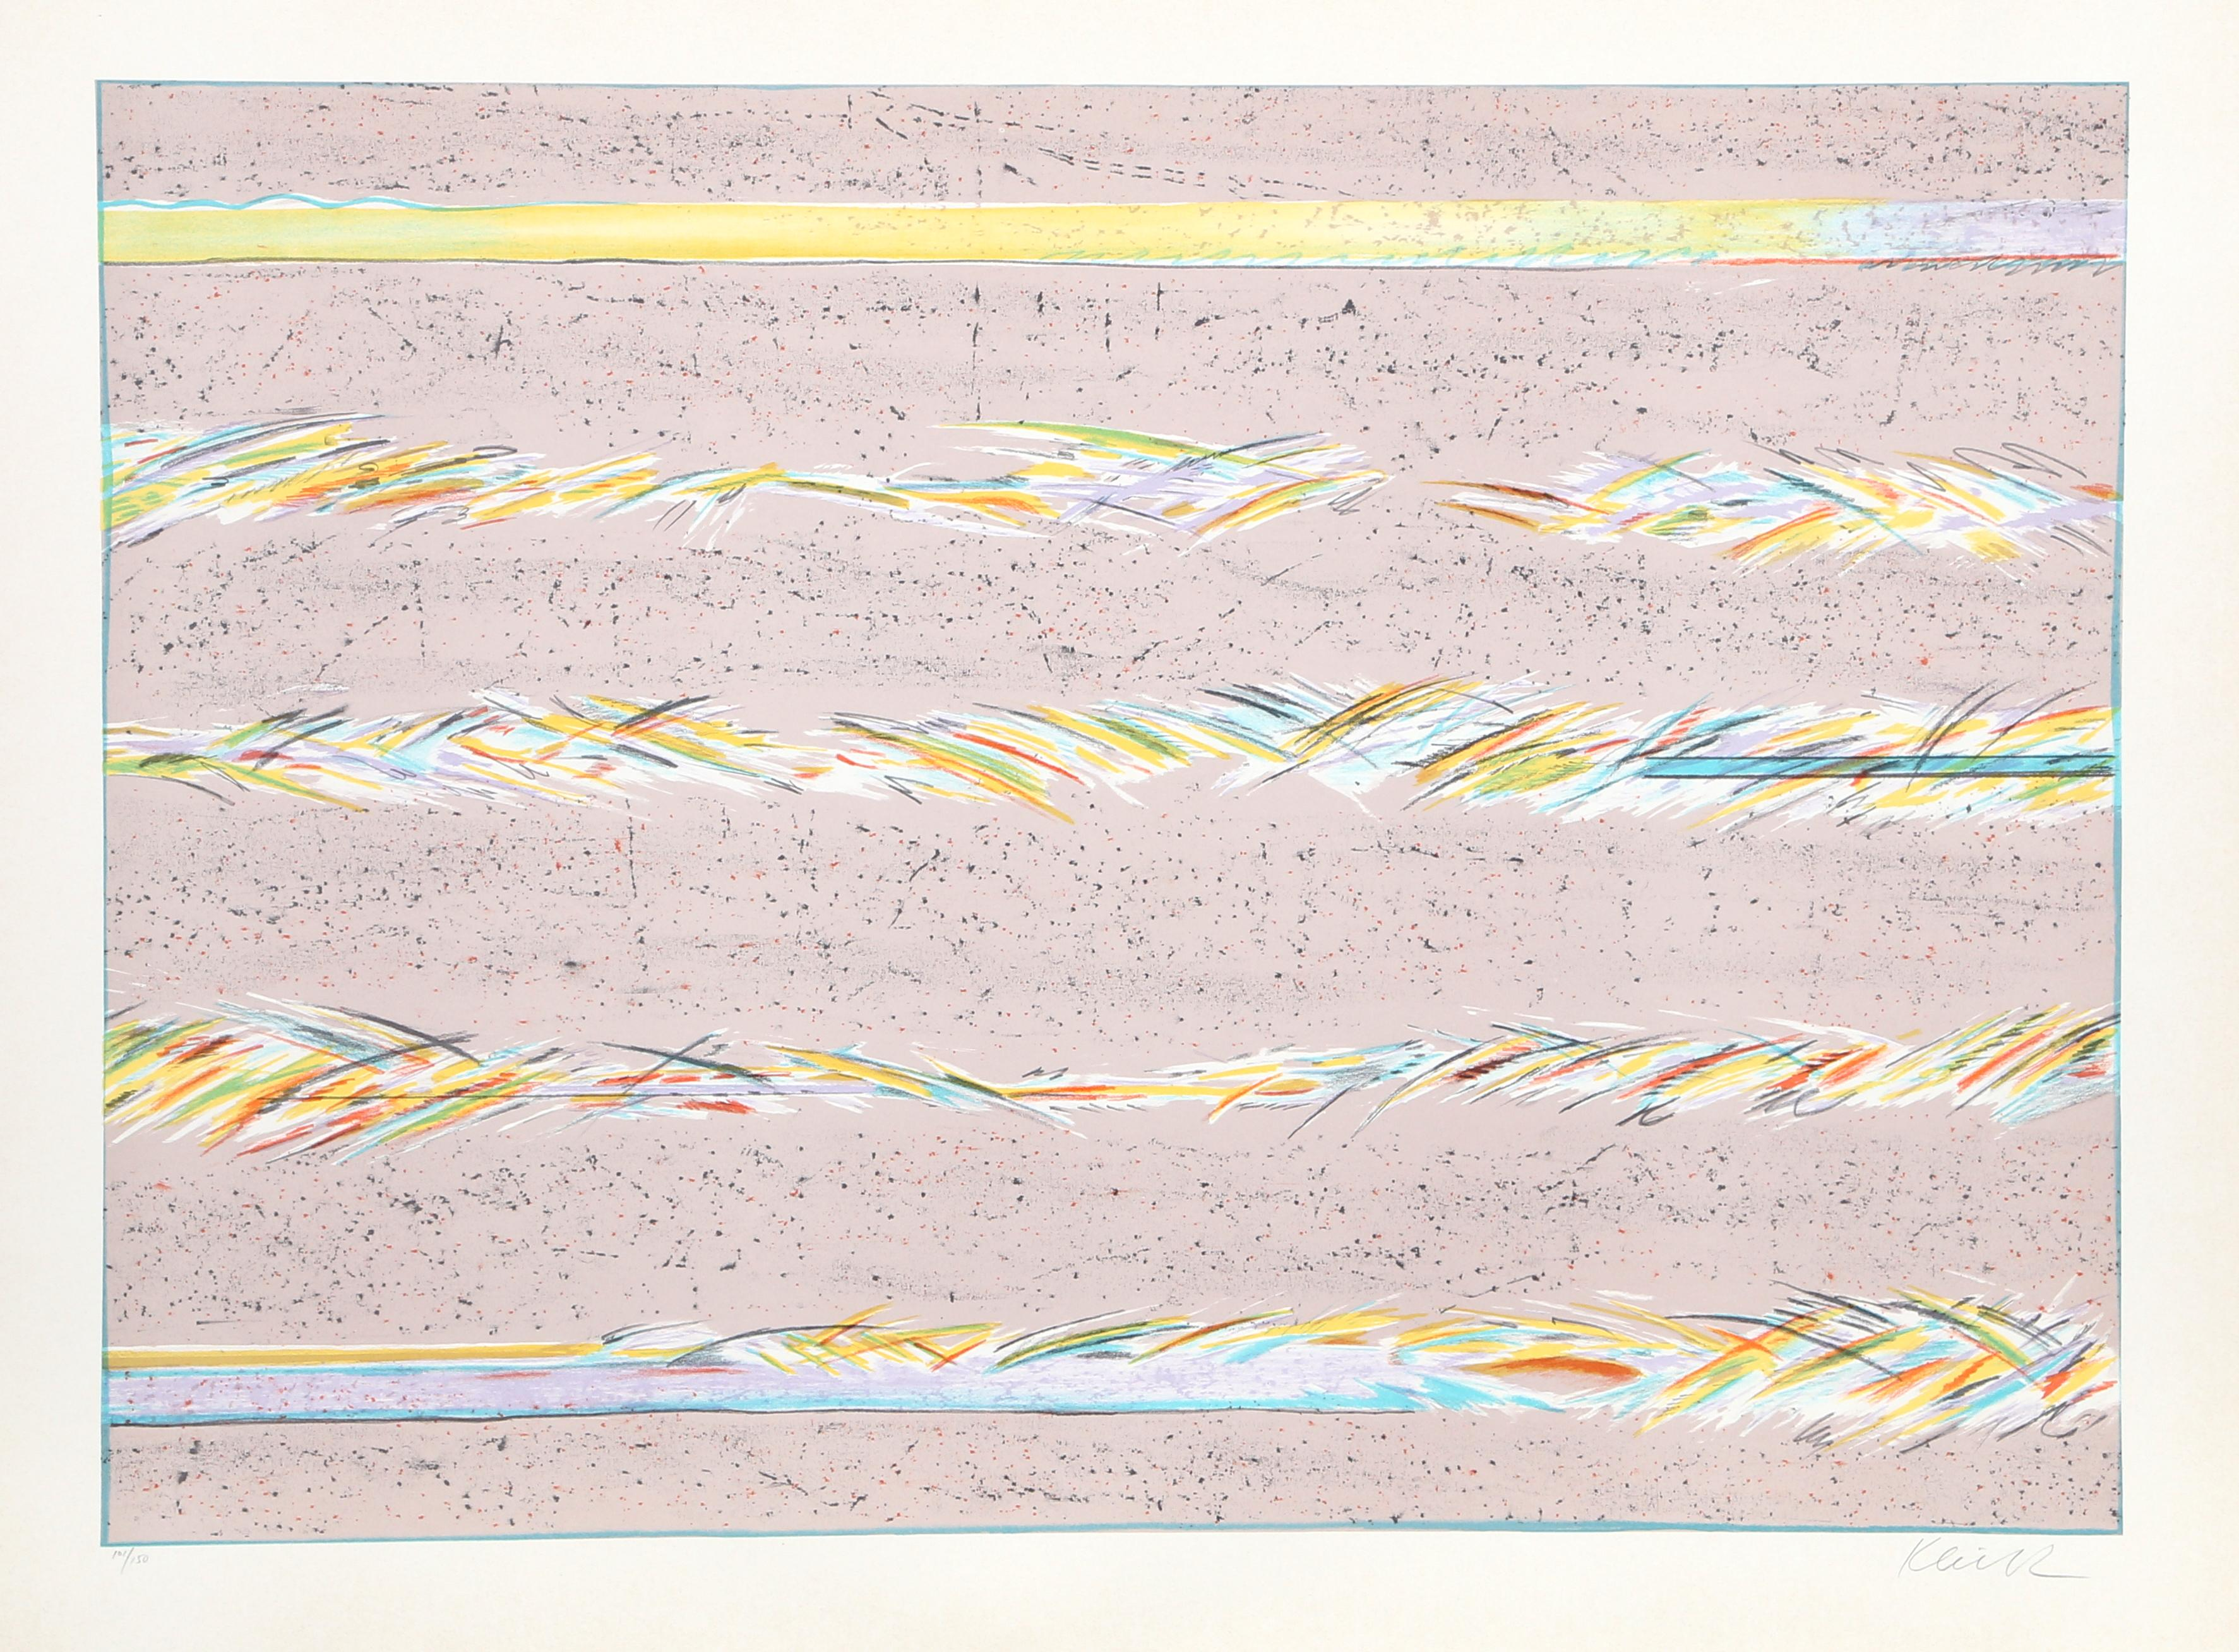 Dream Fields, Pink Abstract Lithograph by Sybil Kleinrock